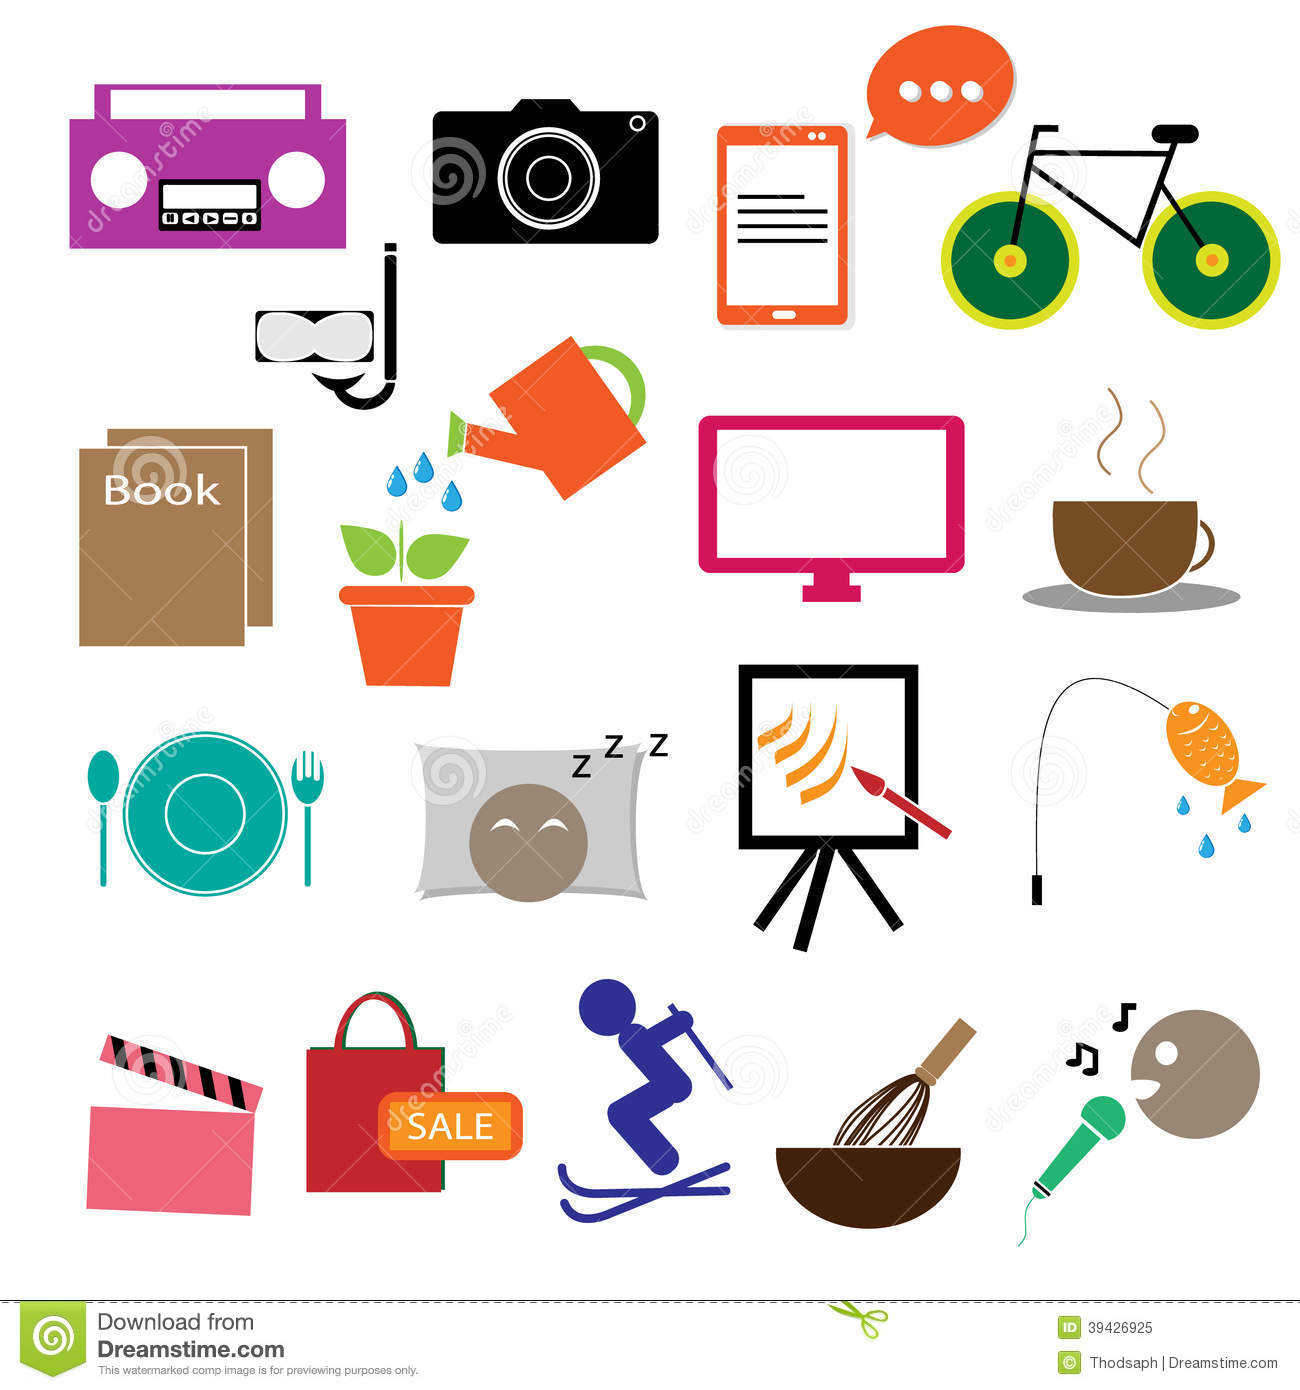 royalty-free-stock-photo-hobby-vector-set-image-39426925-X8n47U-clipart.jpg